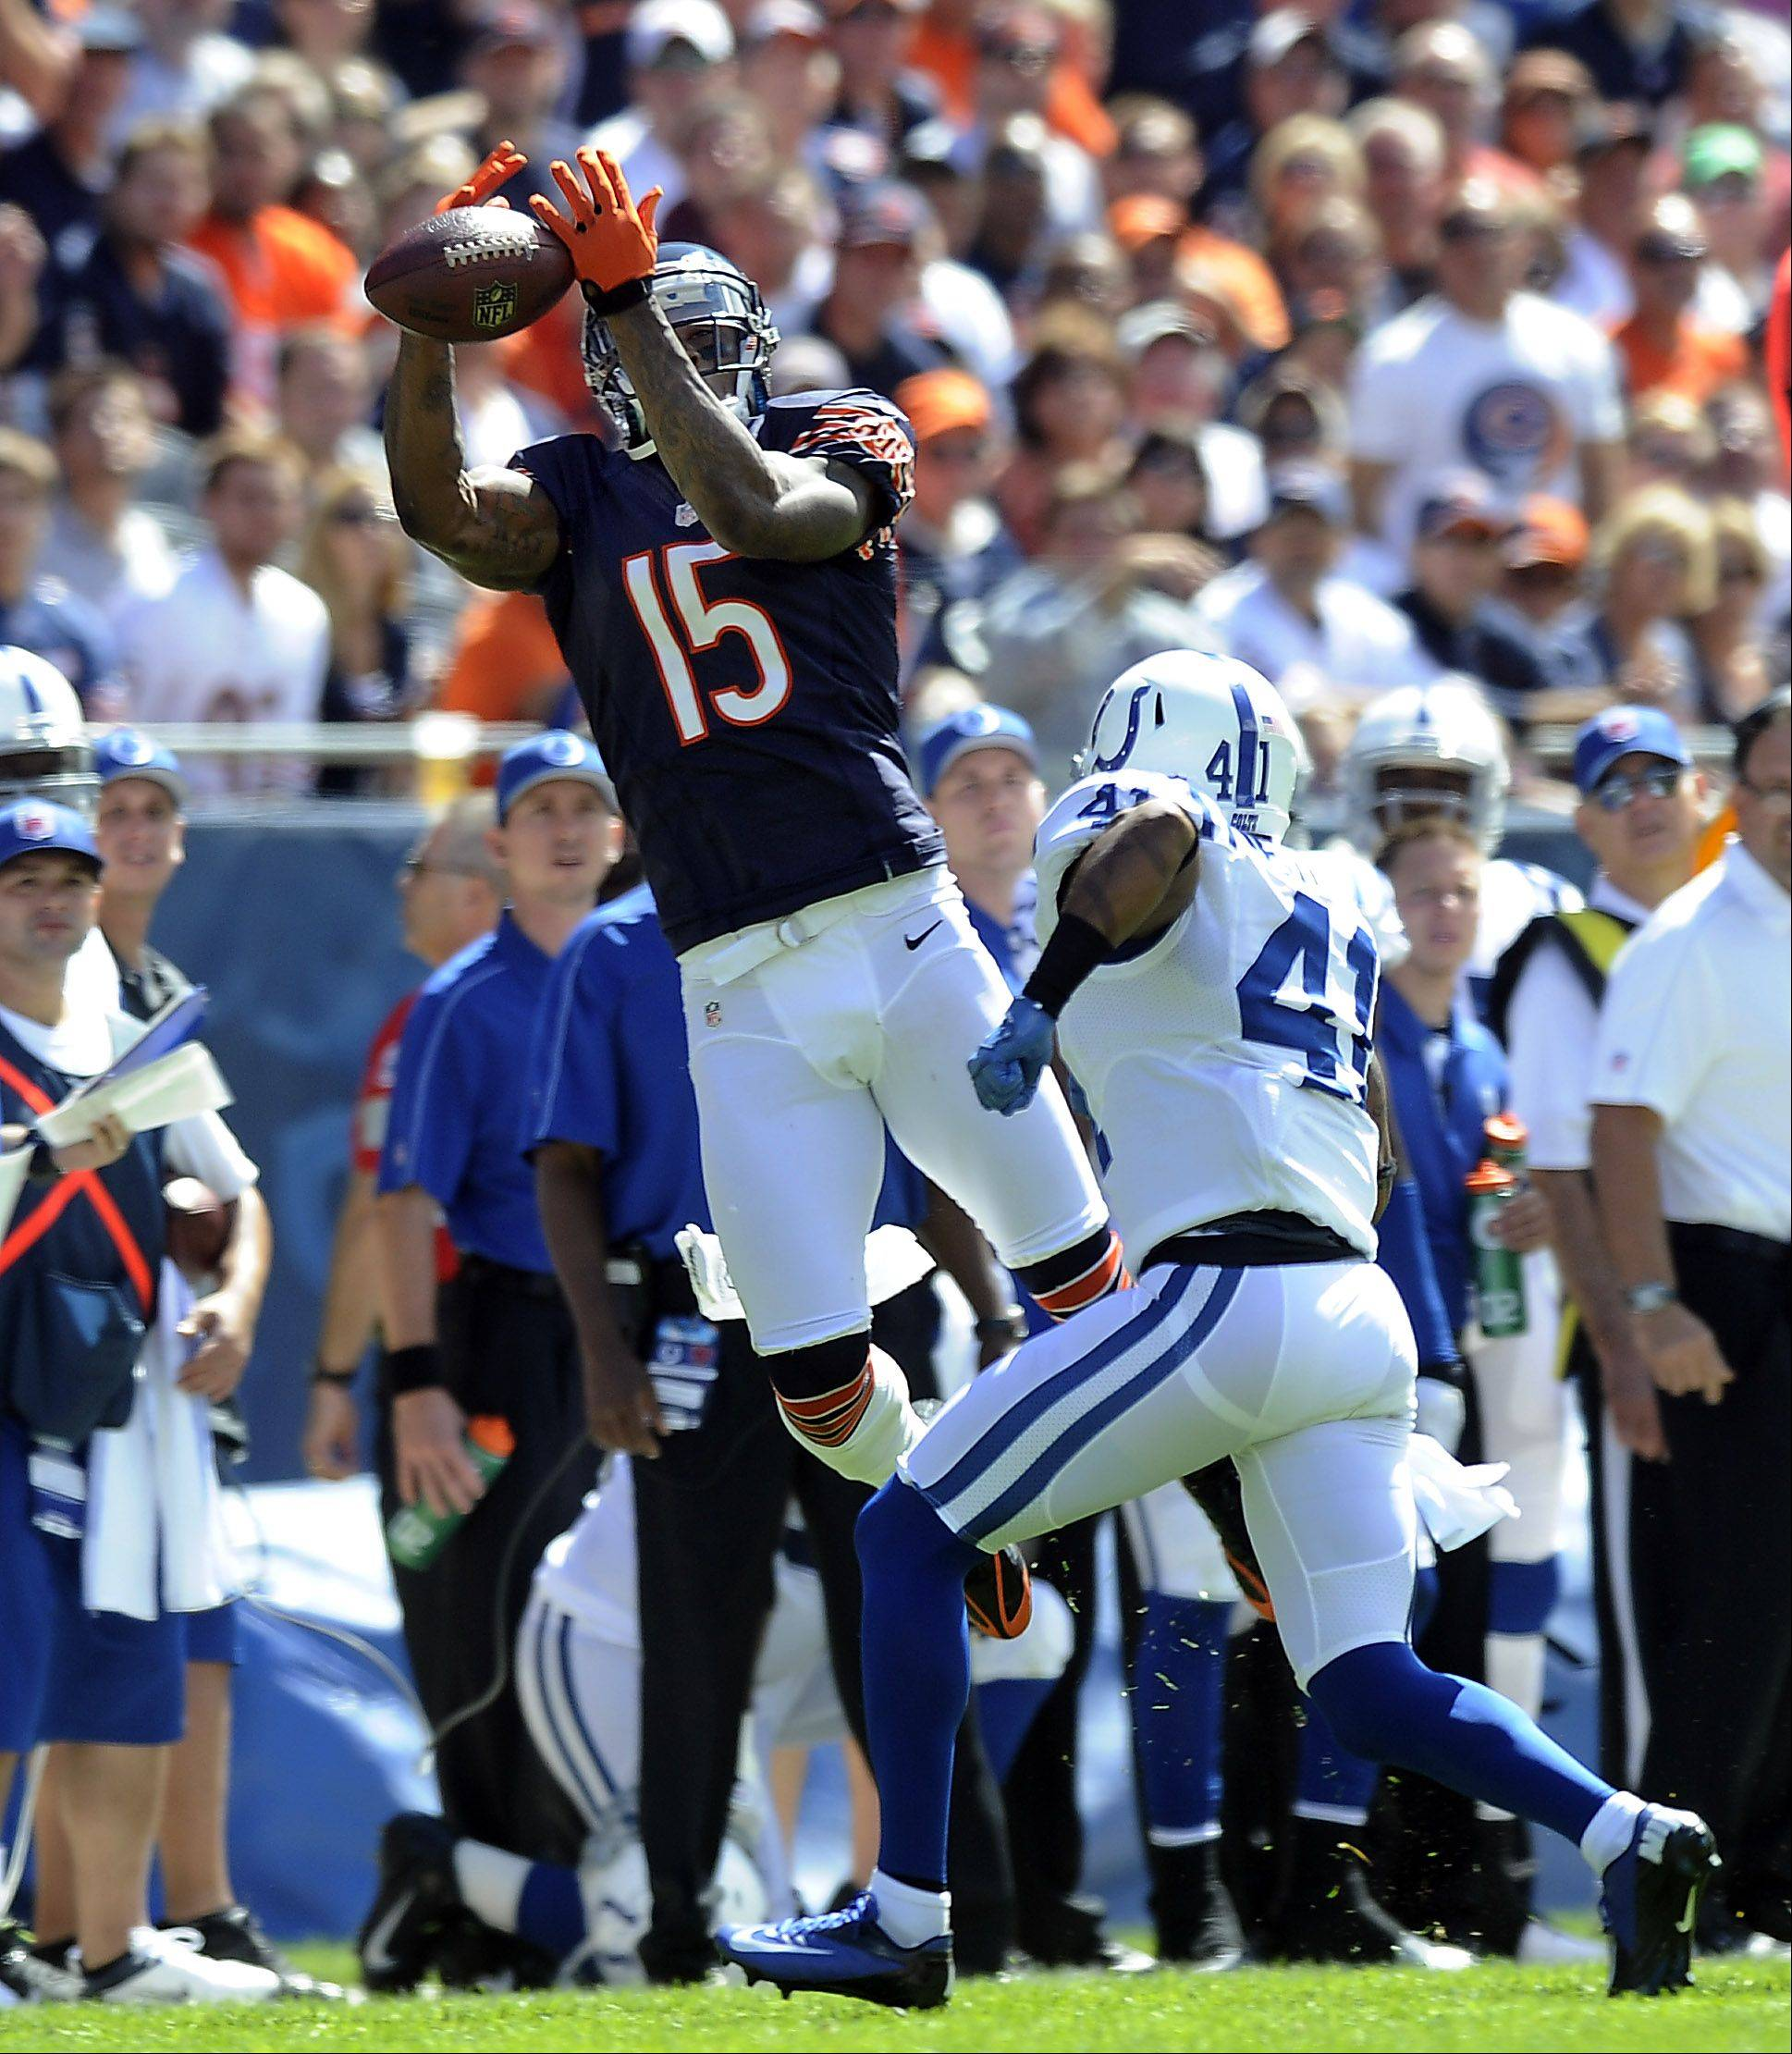 Mark Welsh/mwelsh@dailyherald.comBears reciever Brandon Marshall lets this first quarter pass slips through his fingers during the Bears home opener at Soldier Field in Chicago.